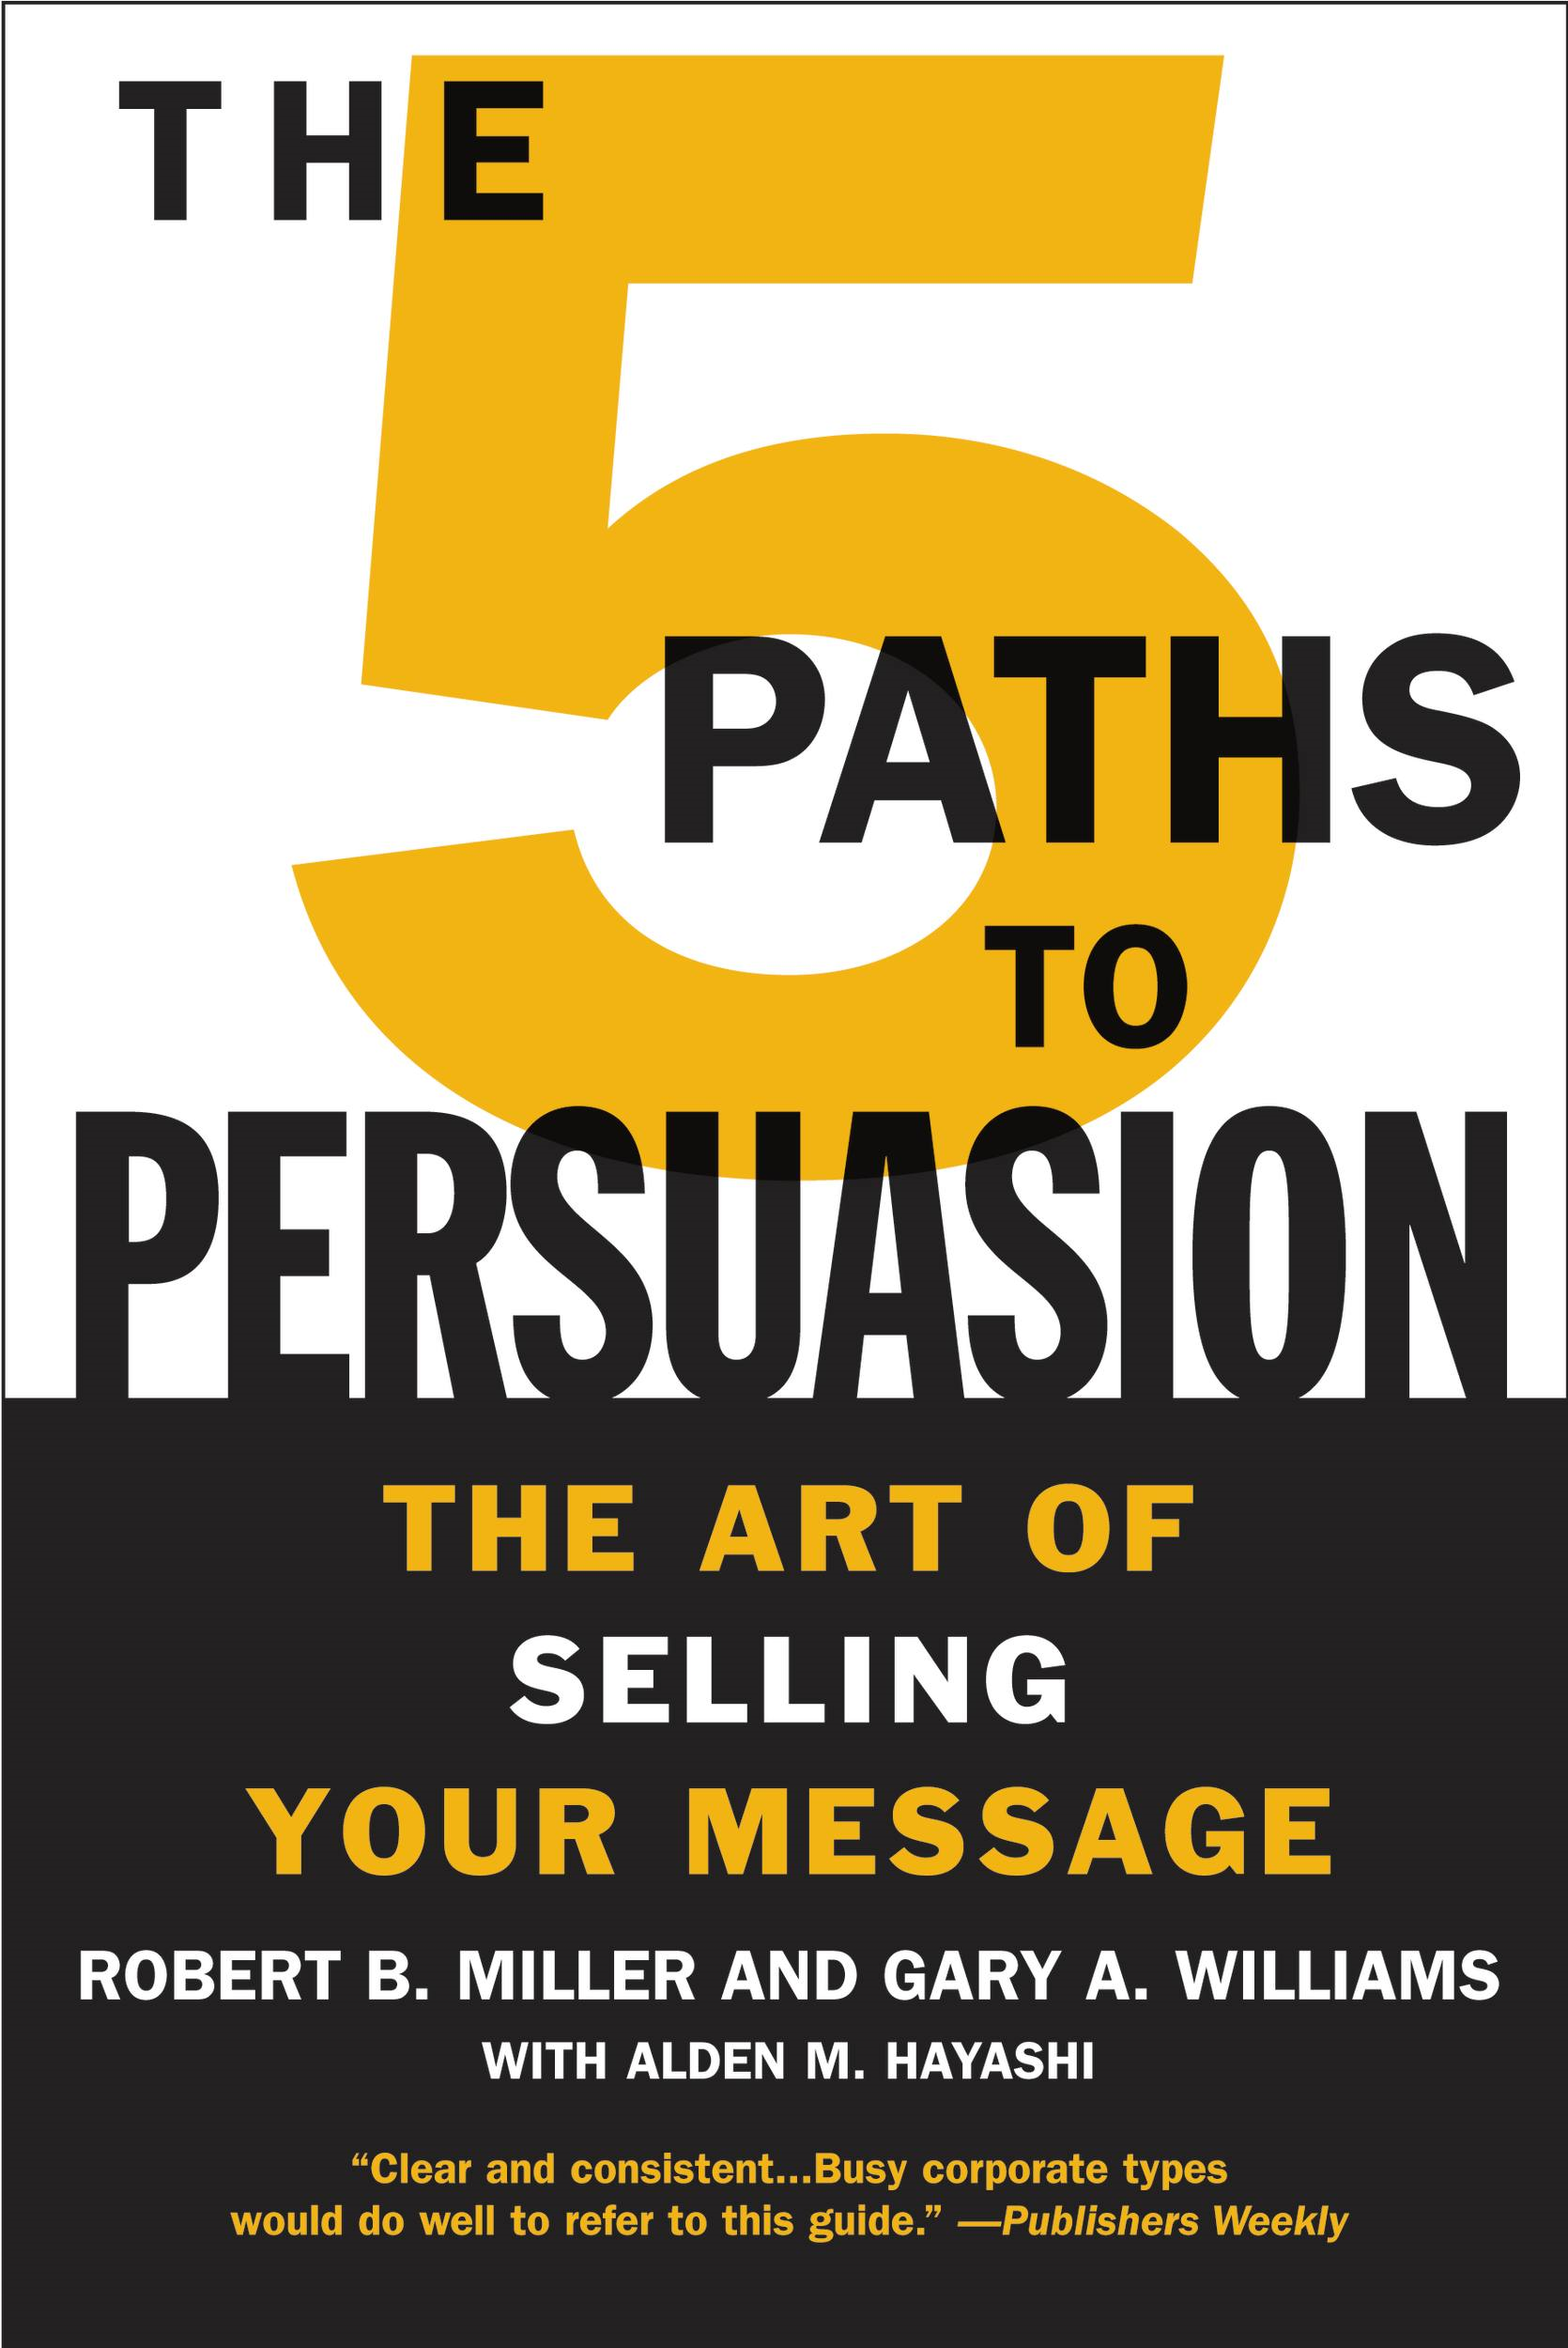 The 5 Paths to Persuasion By: Alden M. Hayashi,Gary A. Williams,Robert B. Miller